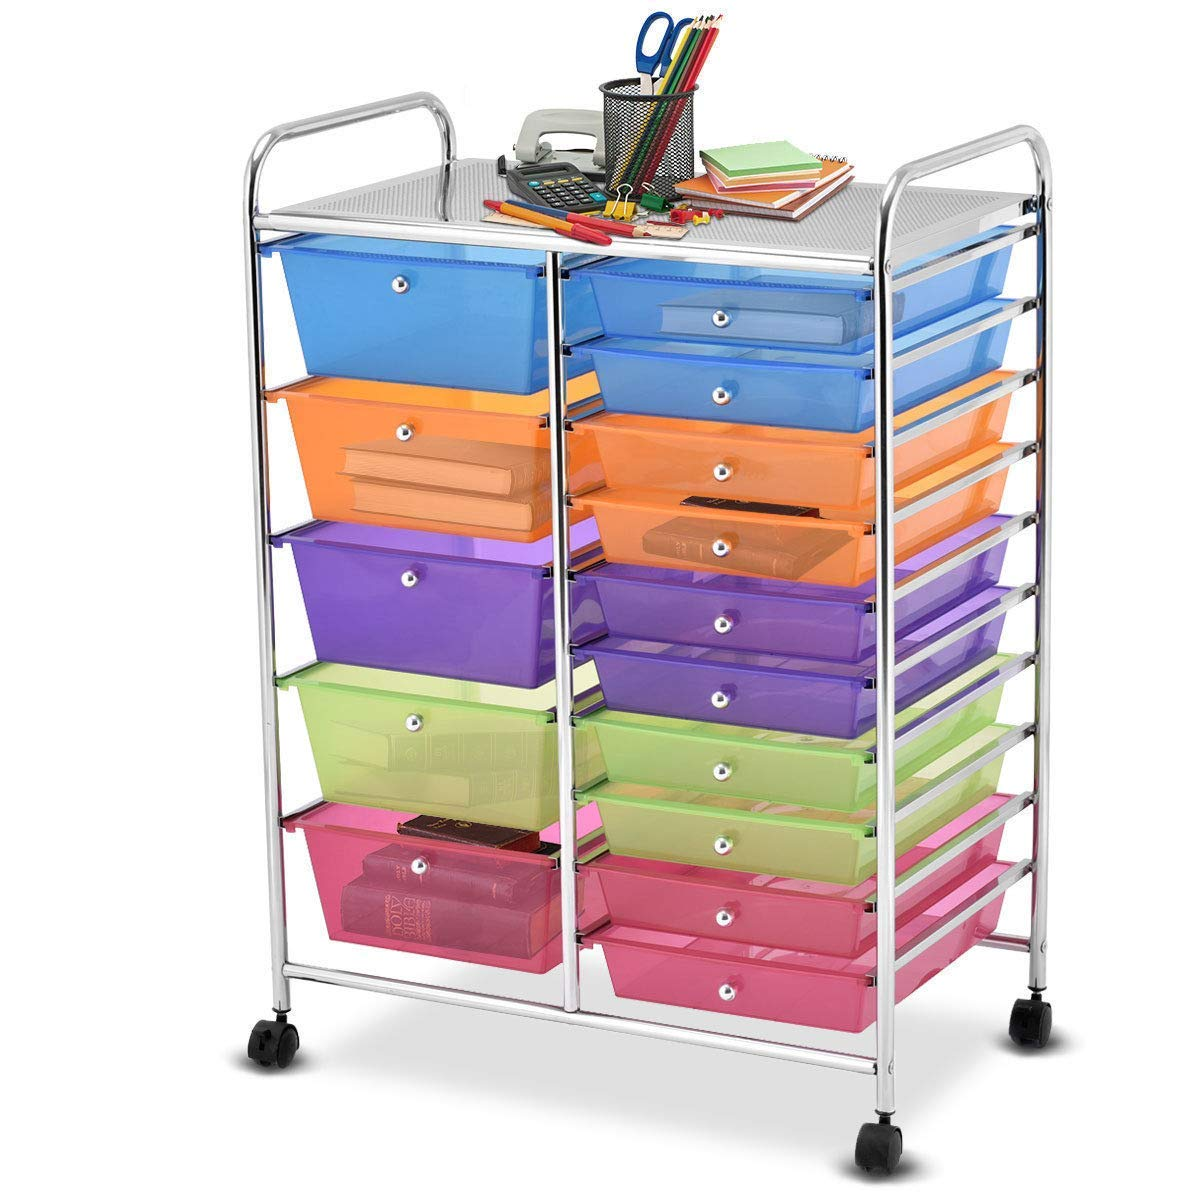 Giantex 15 Drawer Rolling Storage Cart Tools Scrapbook Paper Office School Organizer, Multicolor by Giantex